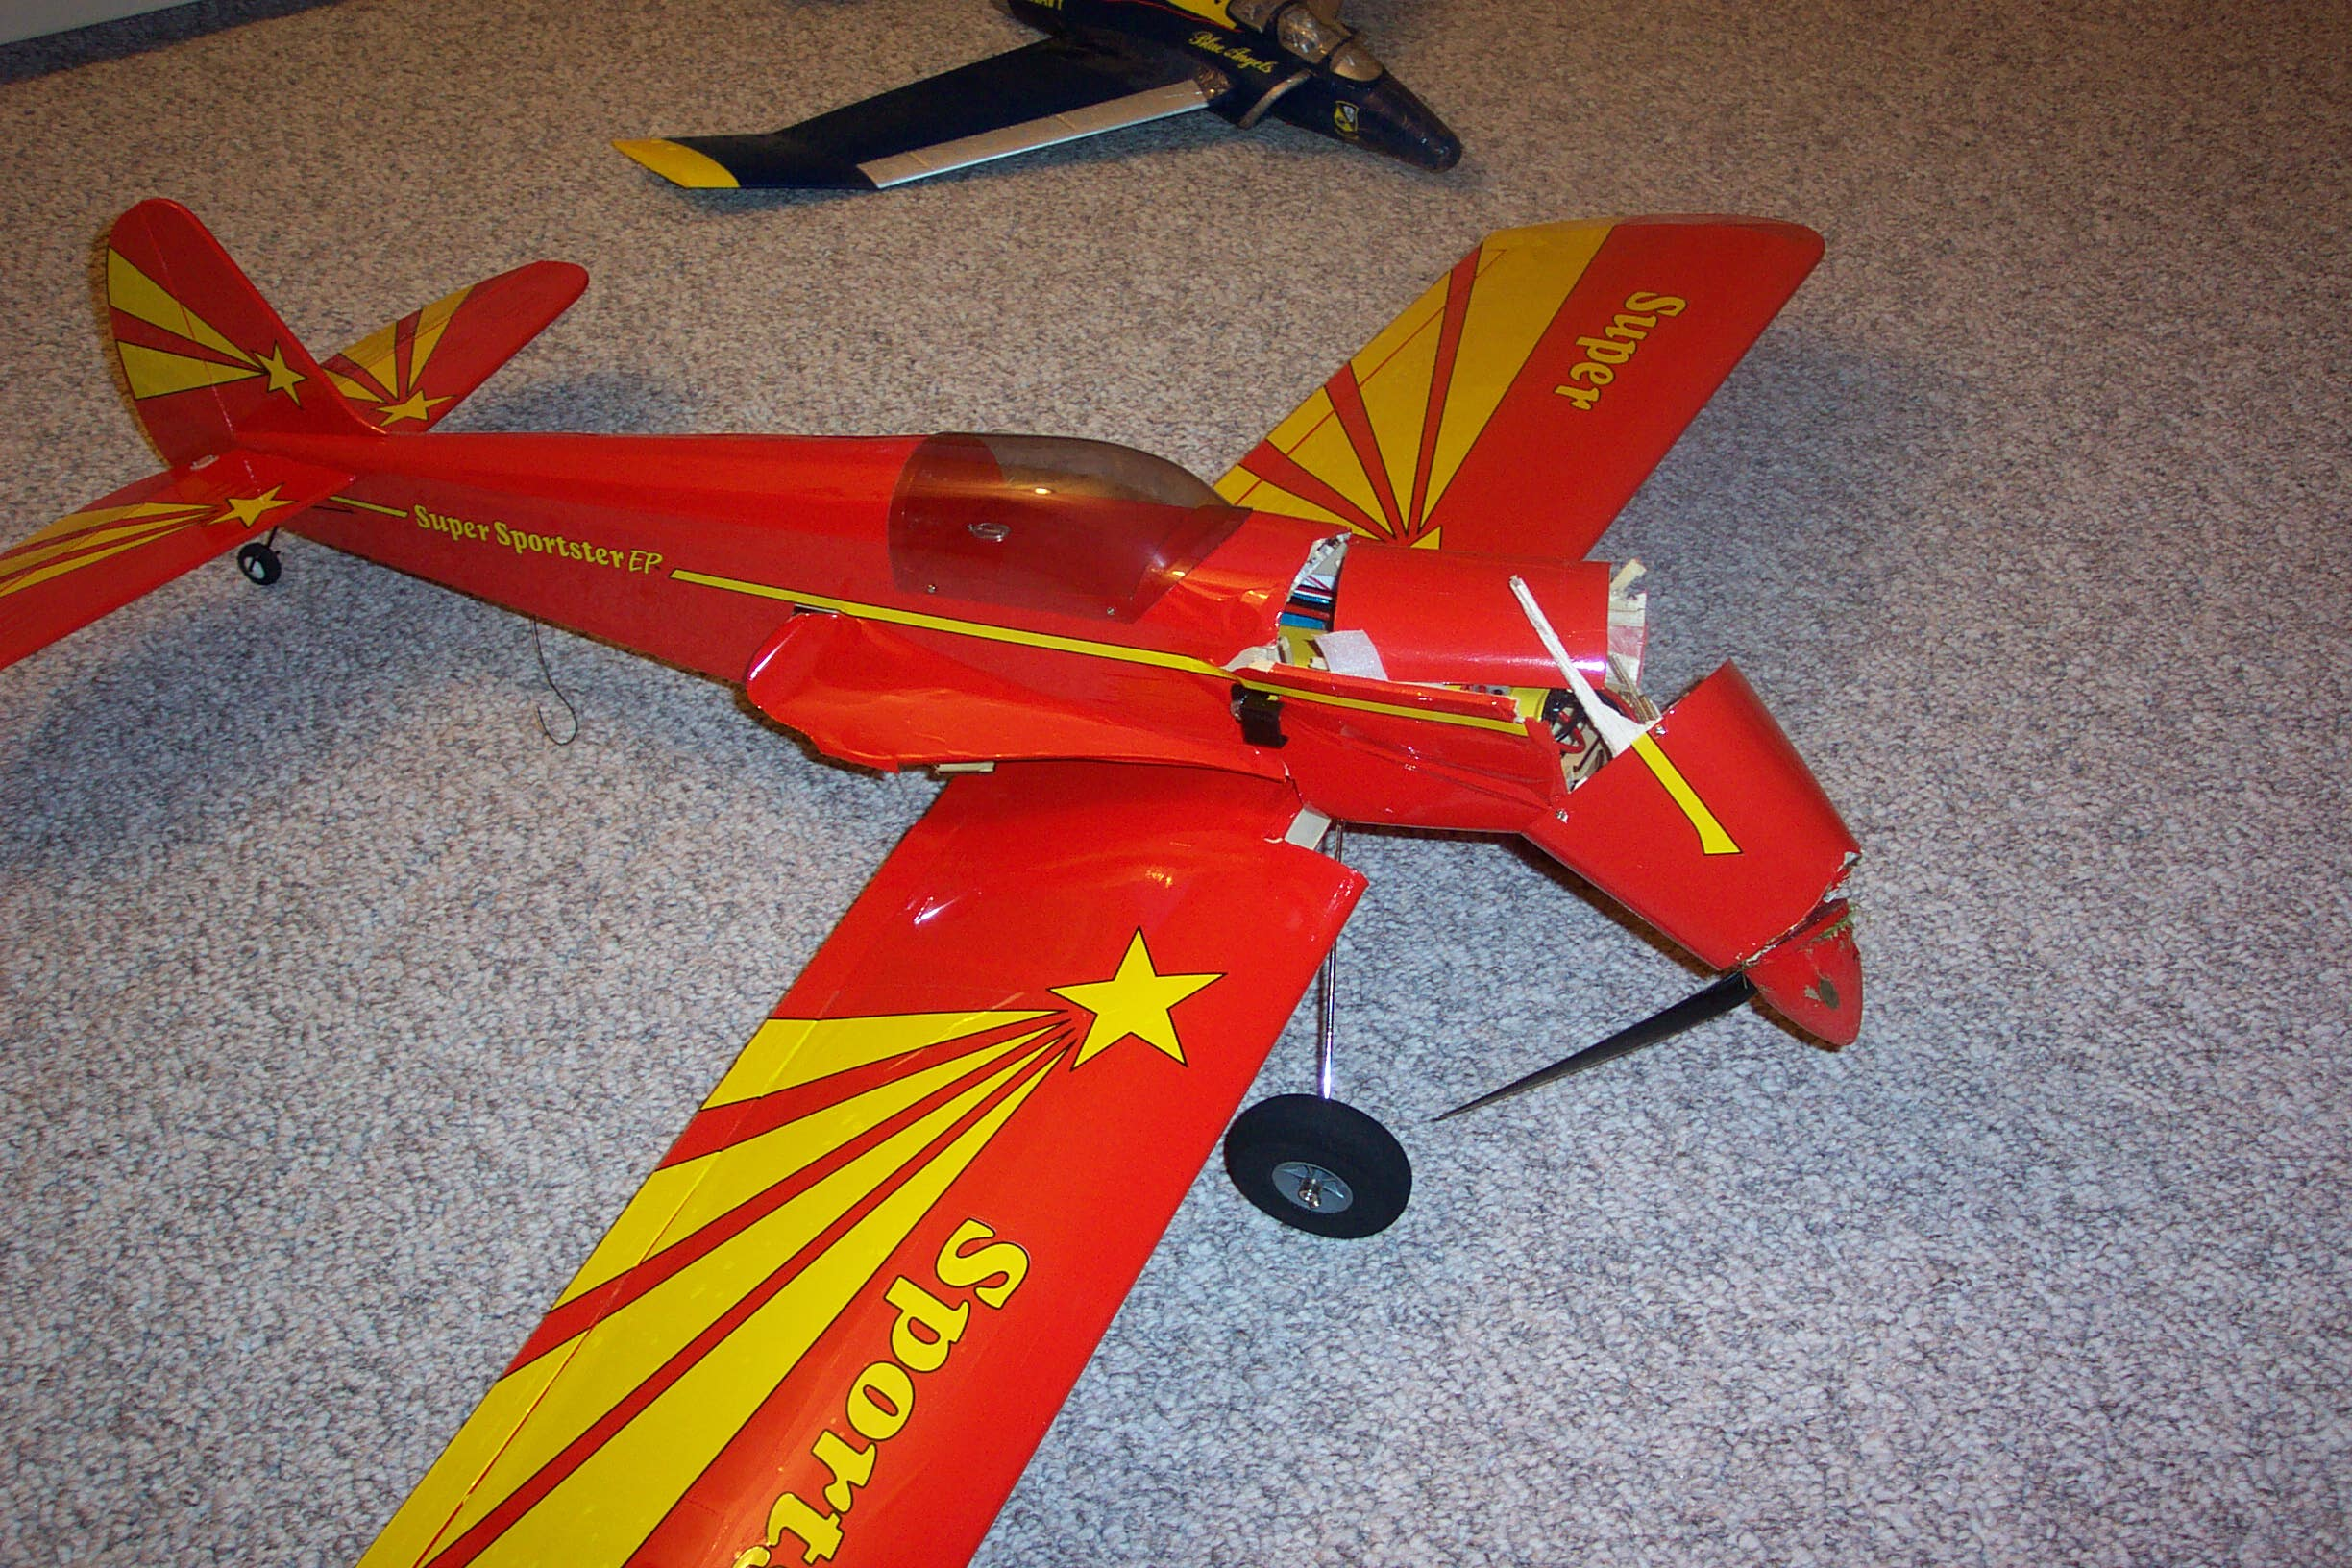 rc plane models with 2706185 Great Planes Super Sportster Ep Modified Power System 3 on Gpma1411 likewise Top 10 Sports Cars At Los Angeles Auto Show also Page 2 also Details moreover Flza4020 Gallery.